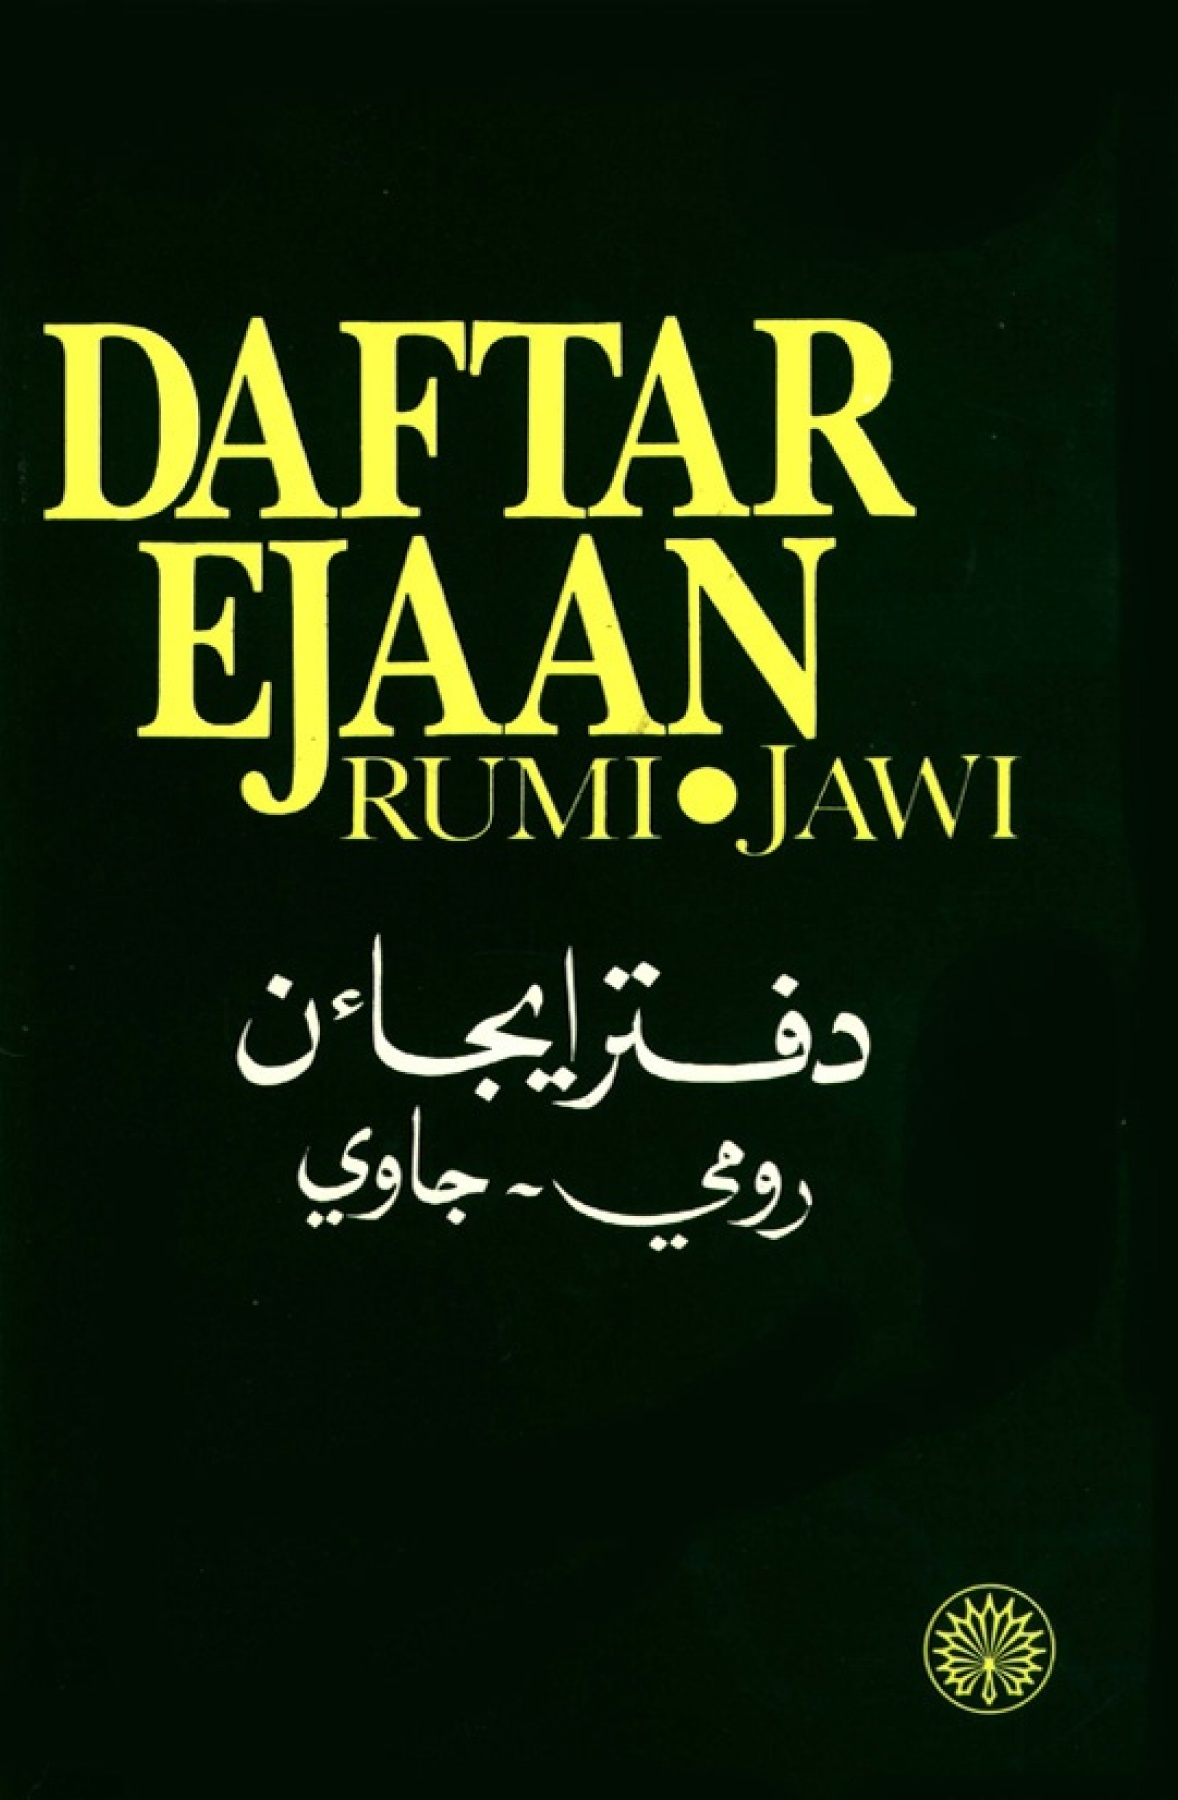 Daftar Ejaan Rumi Jawi Pages 1 50 Text Version Anyflip